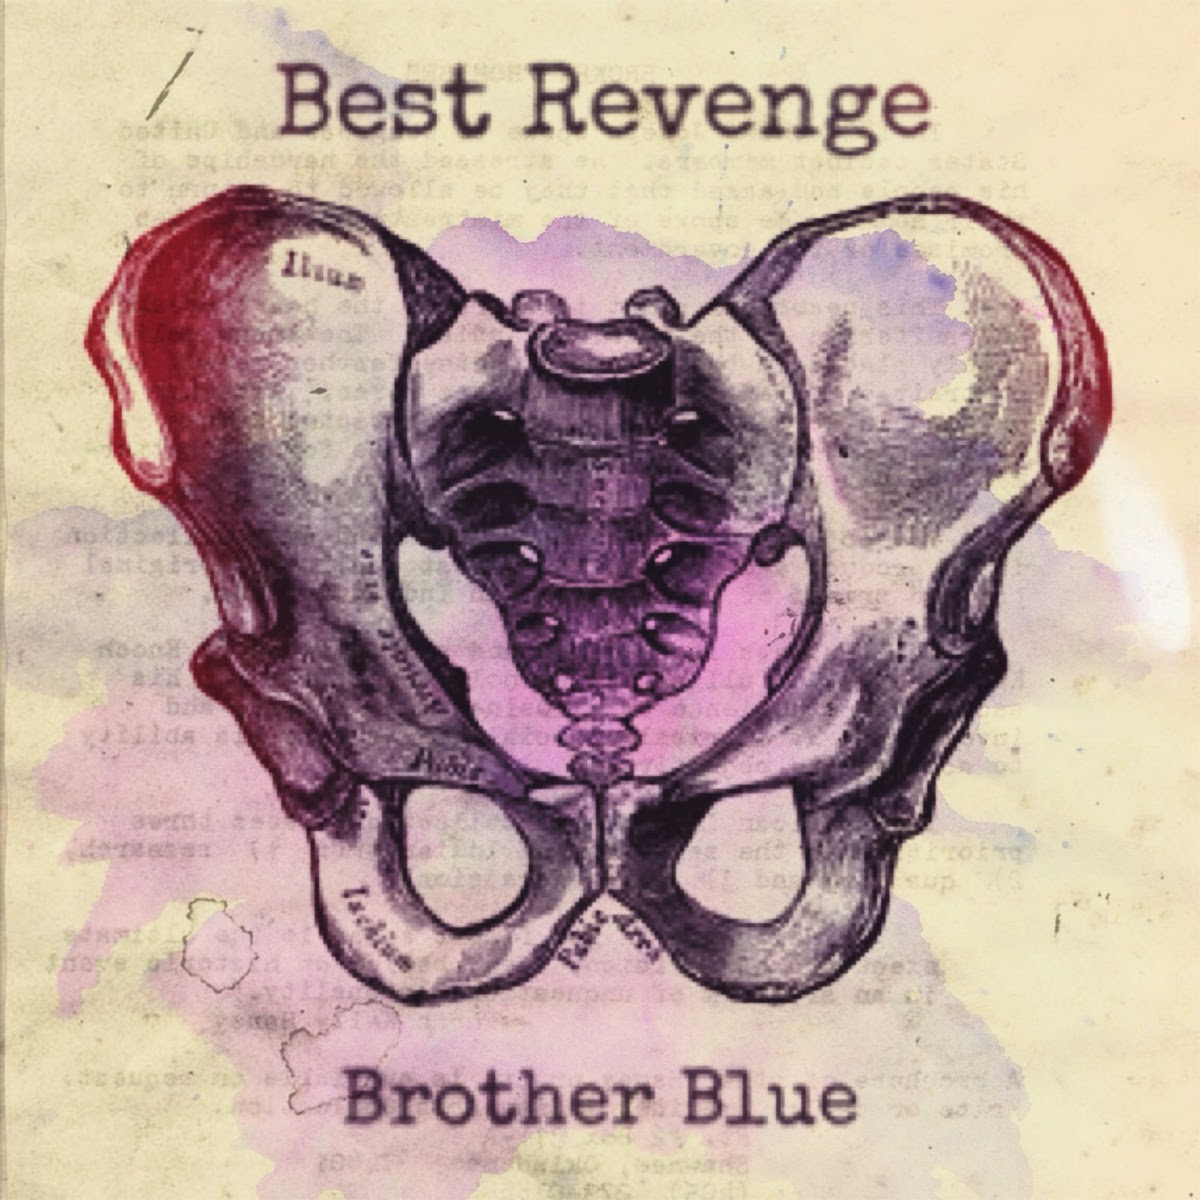 http://www.d4am.net/2014/03/best-revenge-brother-blue-single.html